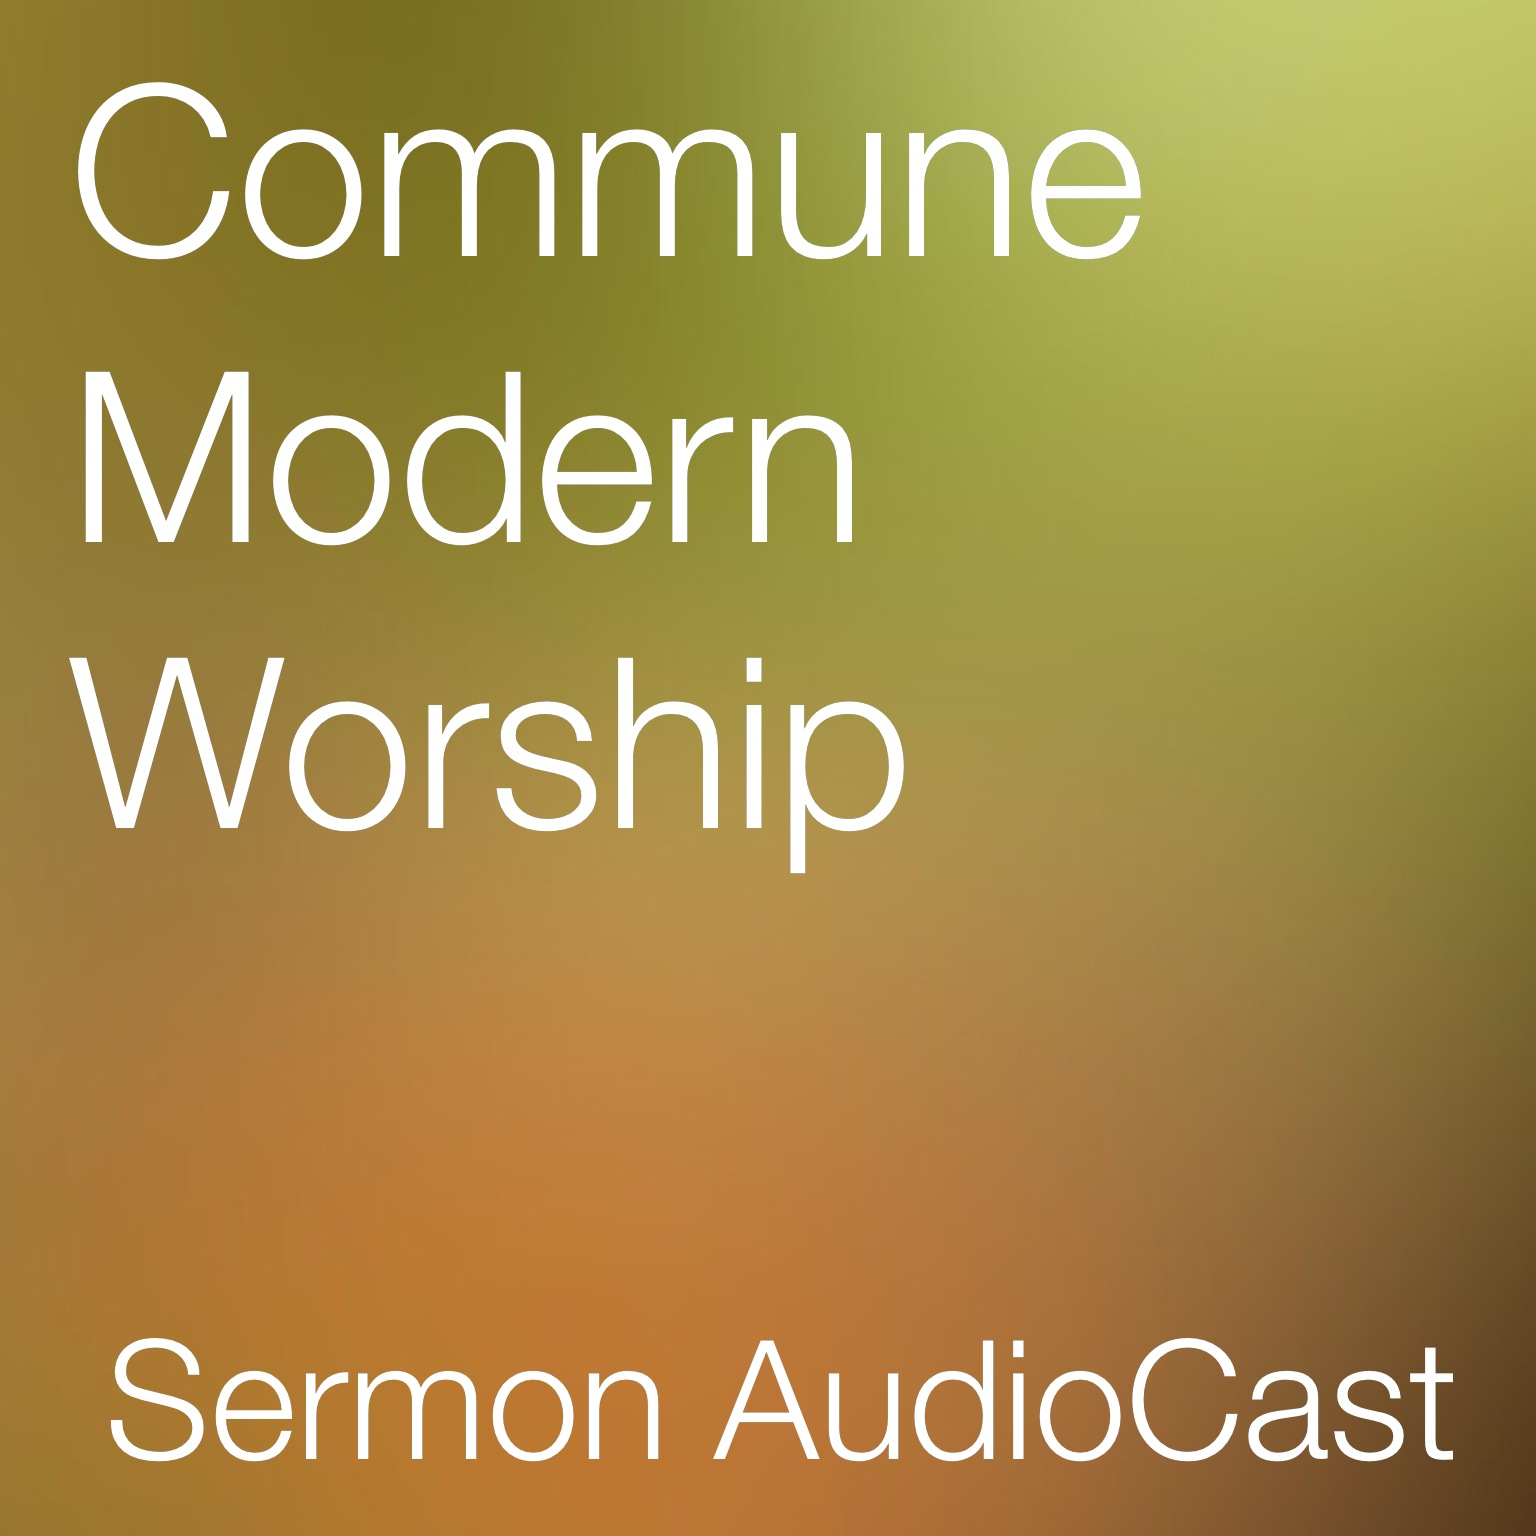 Commune Modern Worship AudioCast